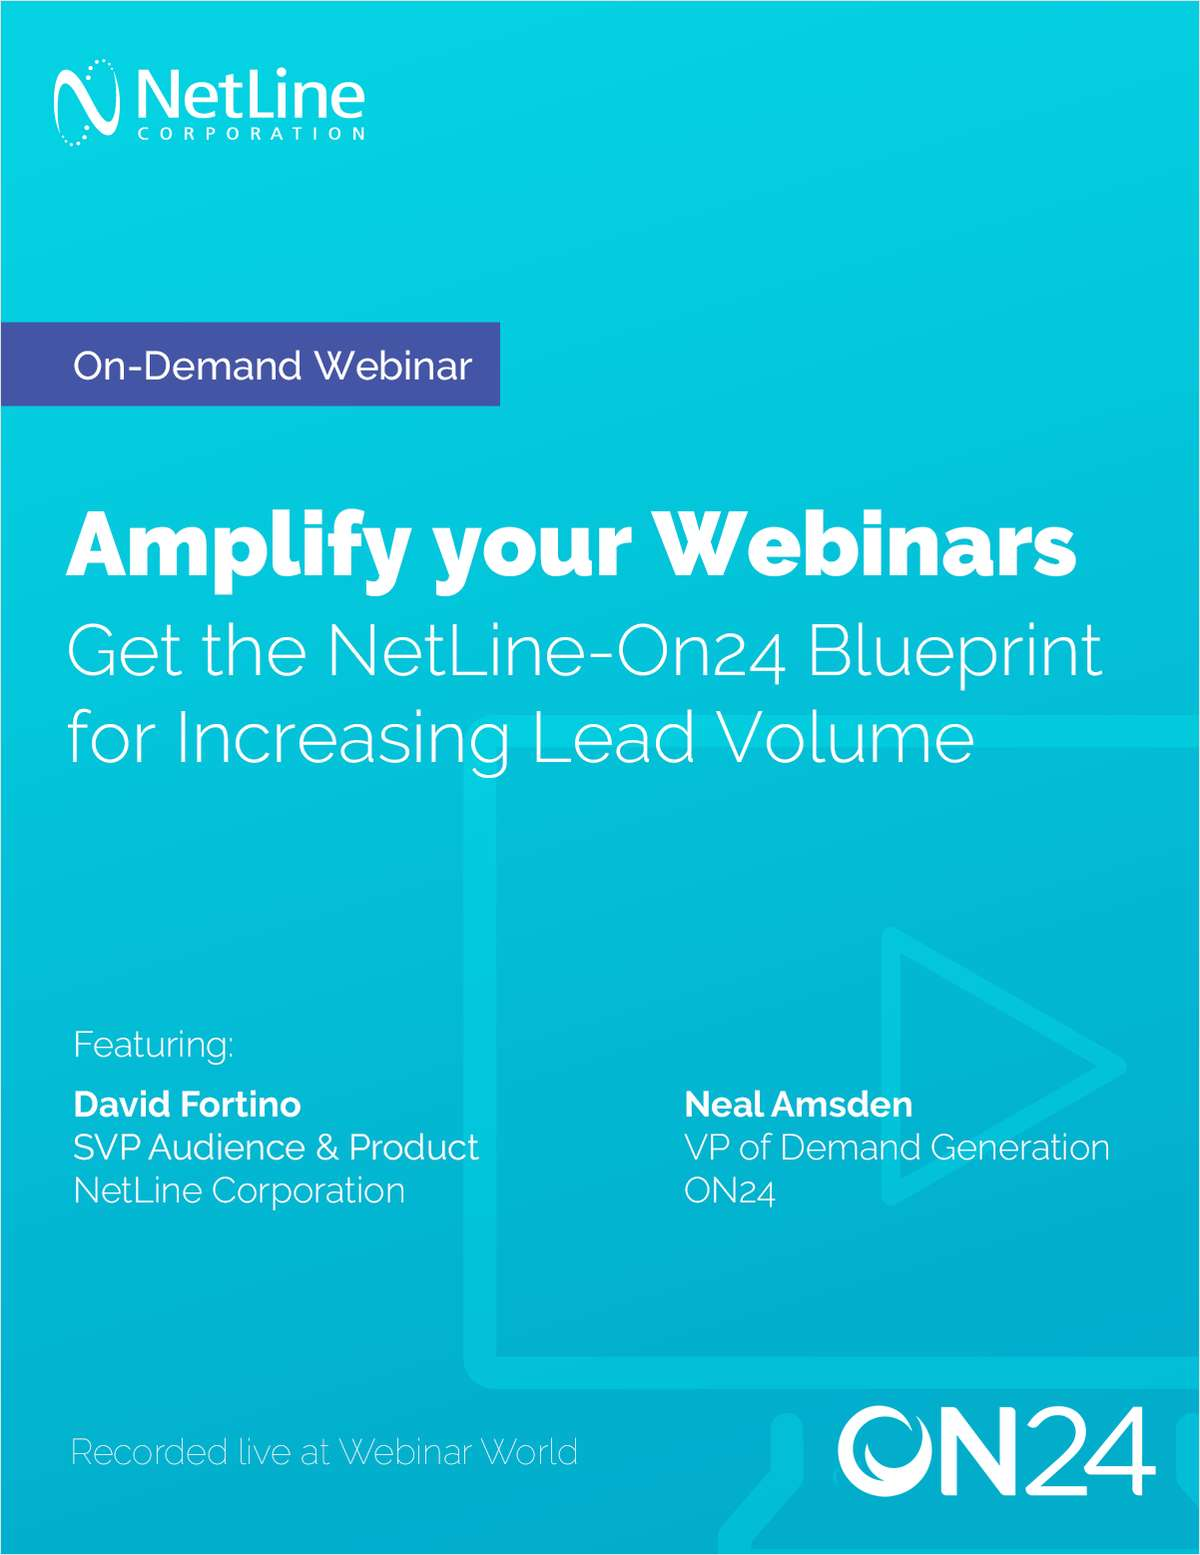 Amplify your Webinars: Get the NetLine-ON24 Blueprint for Increasing Lead Volume